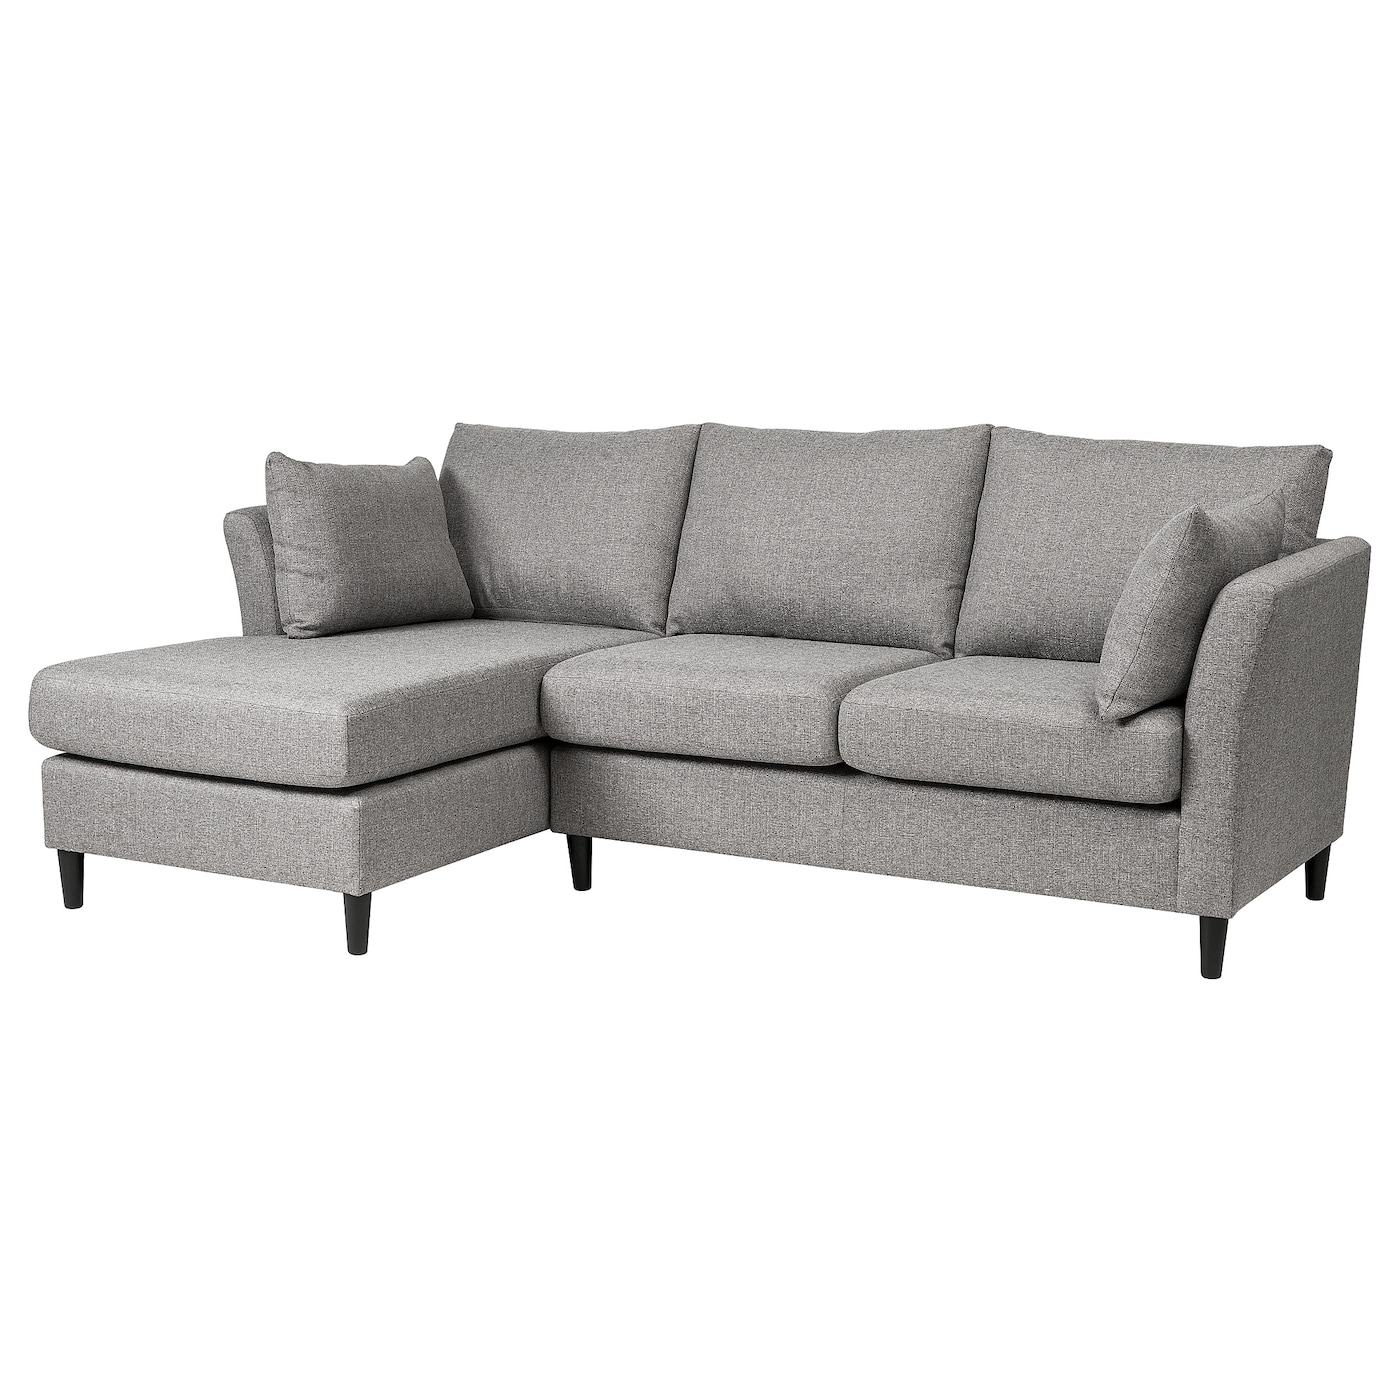 bankeryd 2 seat sofa w chaise longue left grey ikea. Black Bedroom Furniture Sets. Home Design Ideas